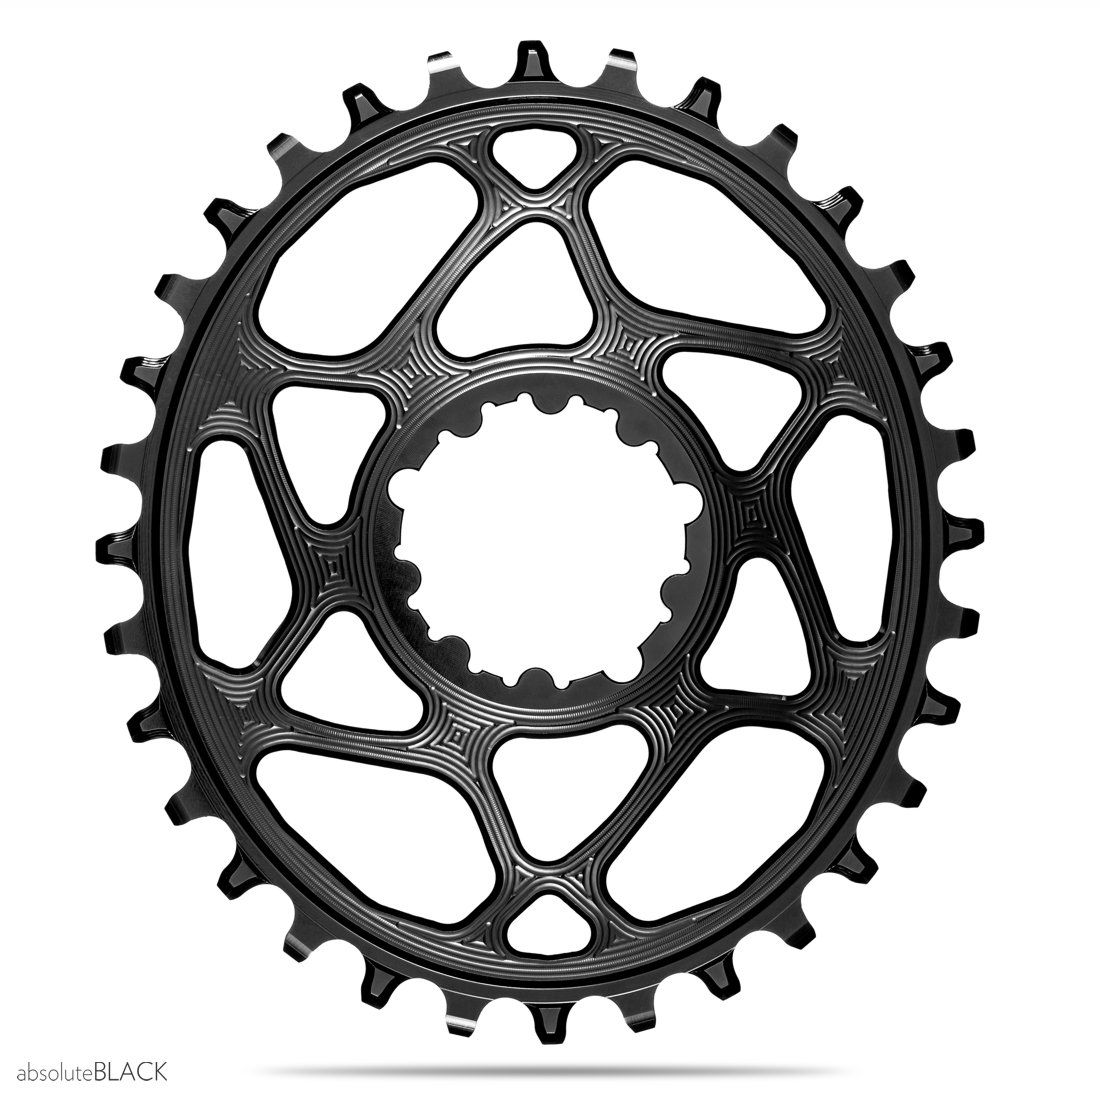 Oval Bicycle Chainring For Sram Boost 148 DUB GXP 3mm Offset X9 X0 XX1 eagle X0